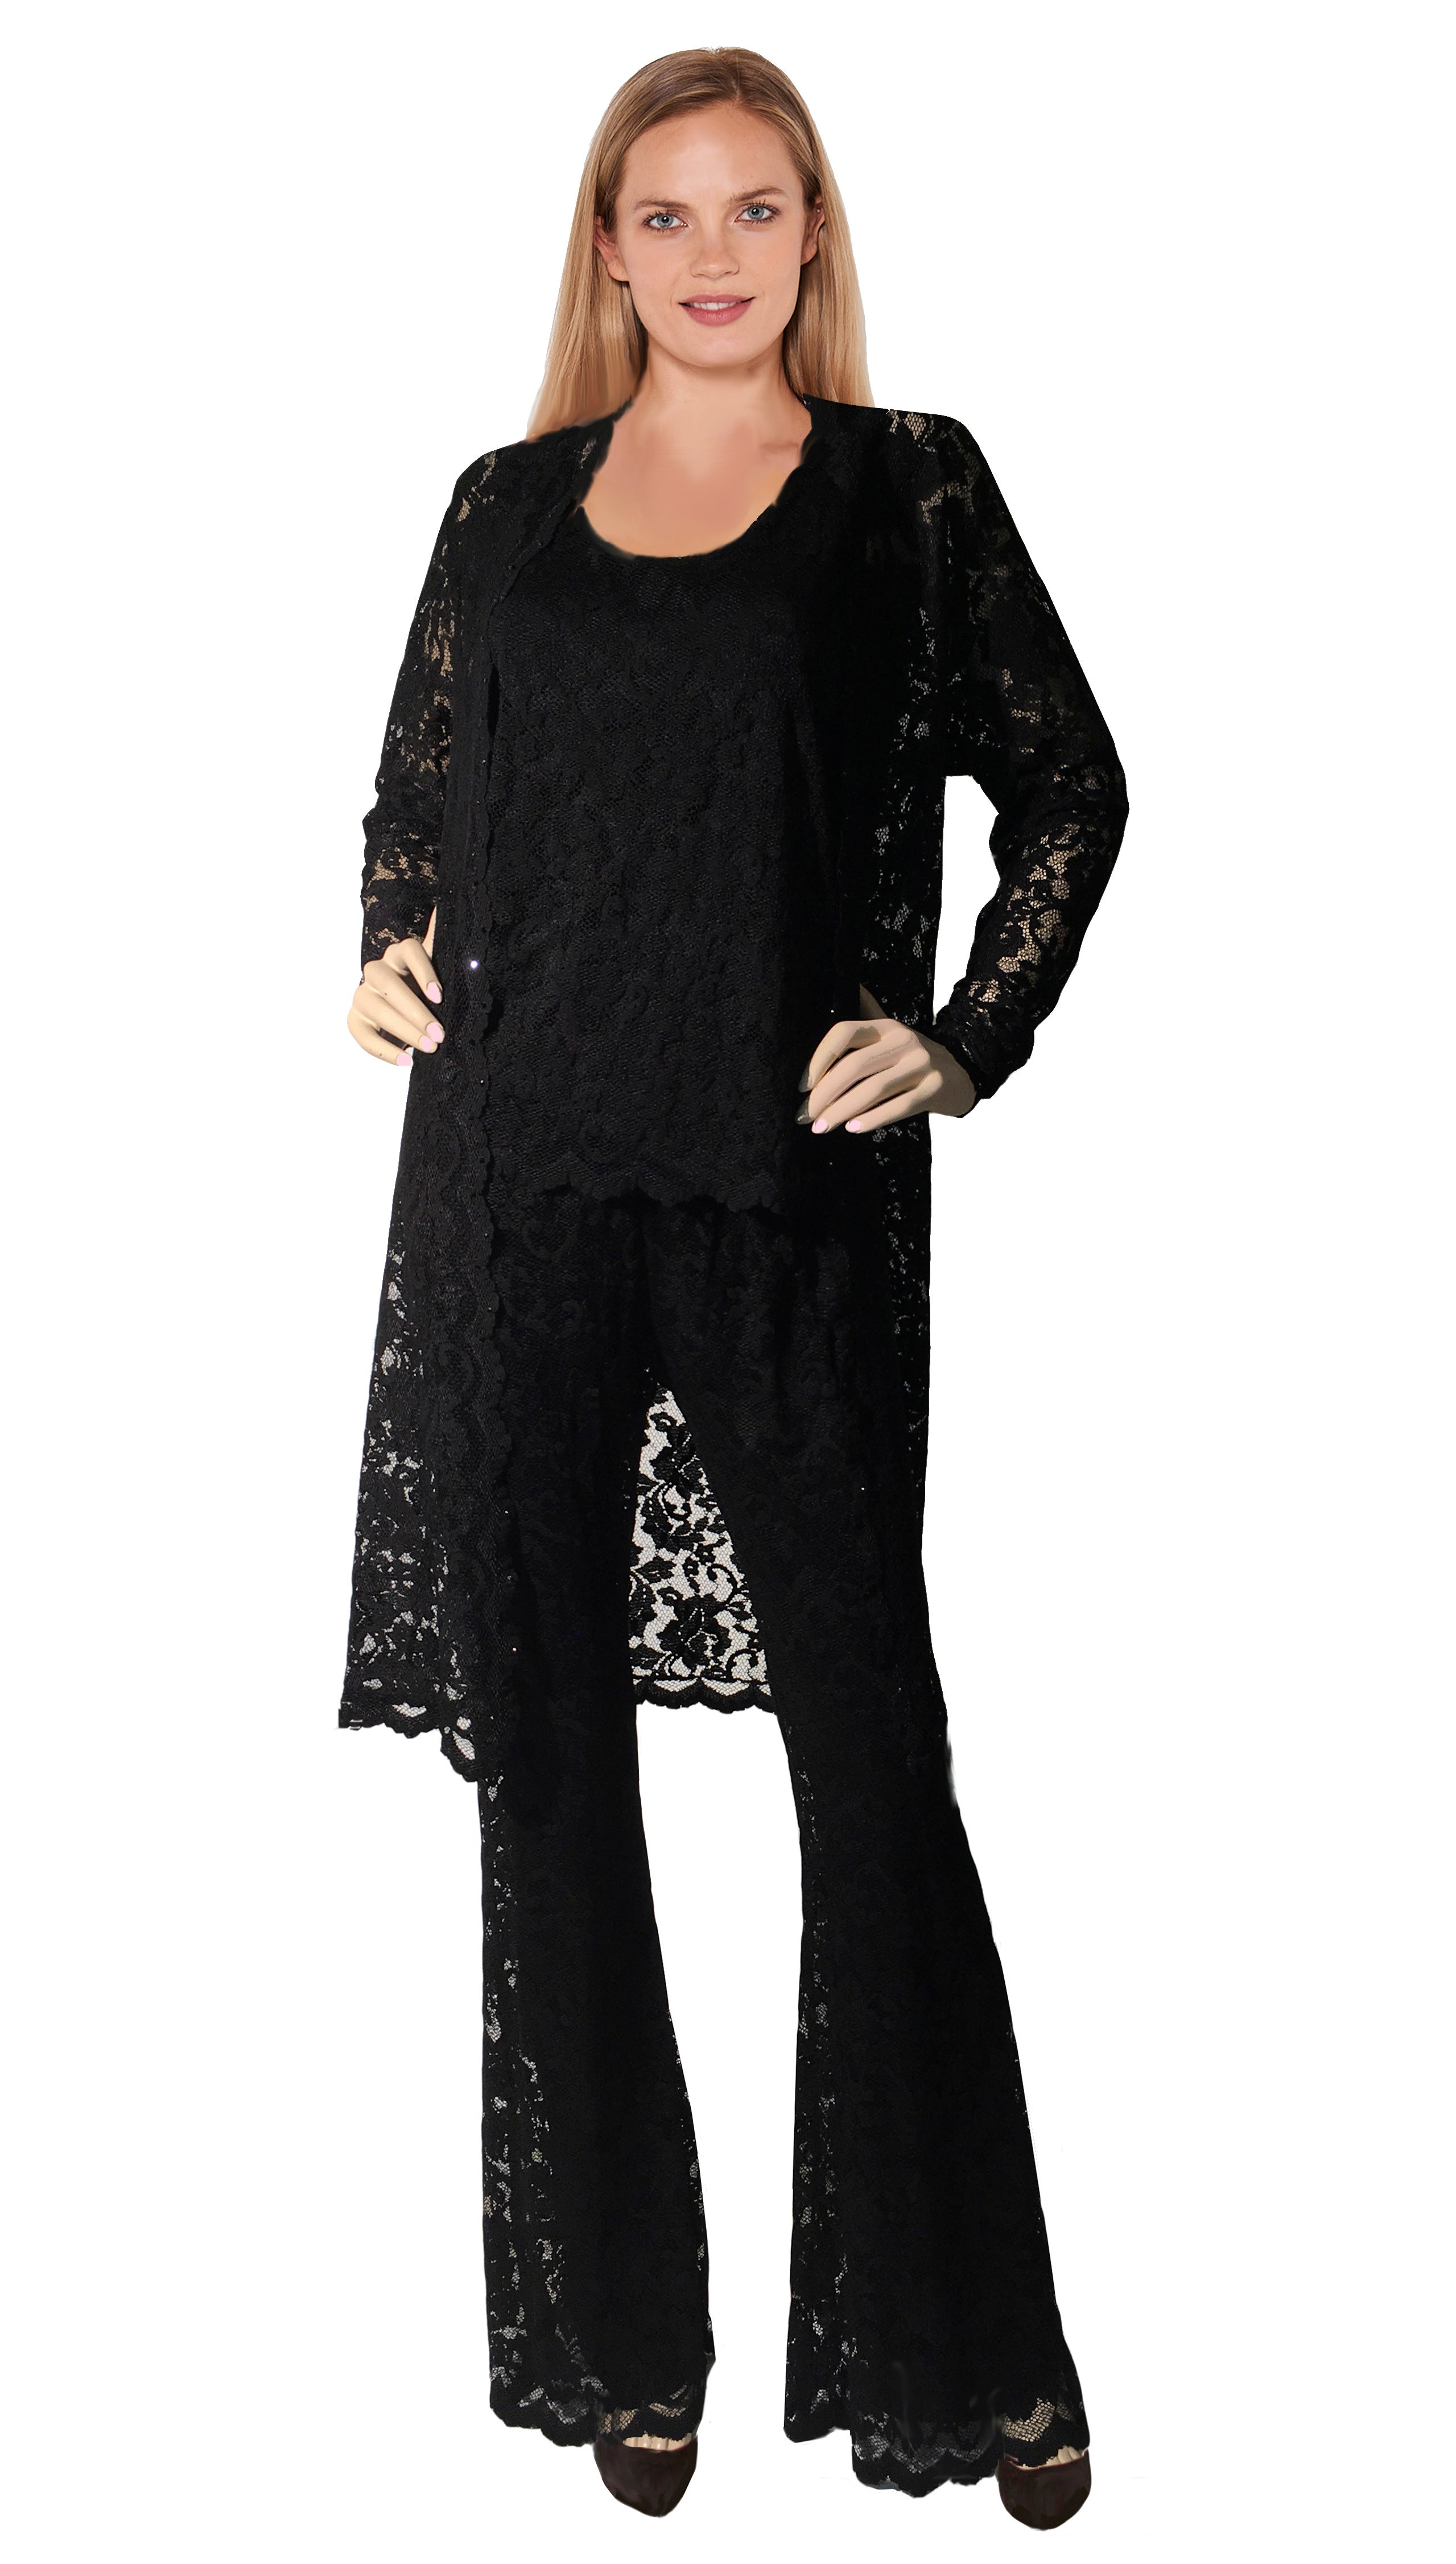 French Rose Lace Duster Jacket with Scoop Neck Cami & Bell Pant - Sara Mique Evening Wear